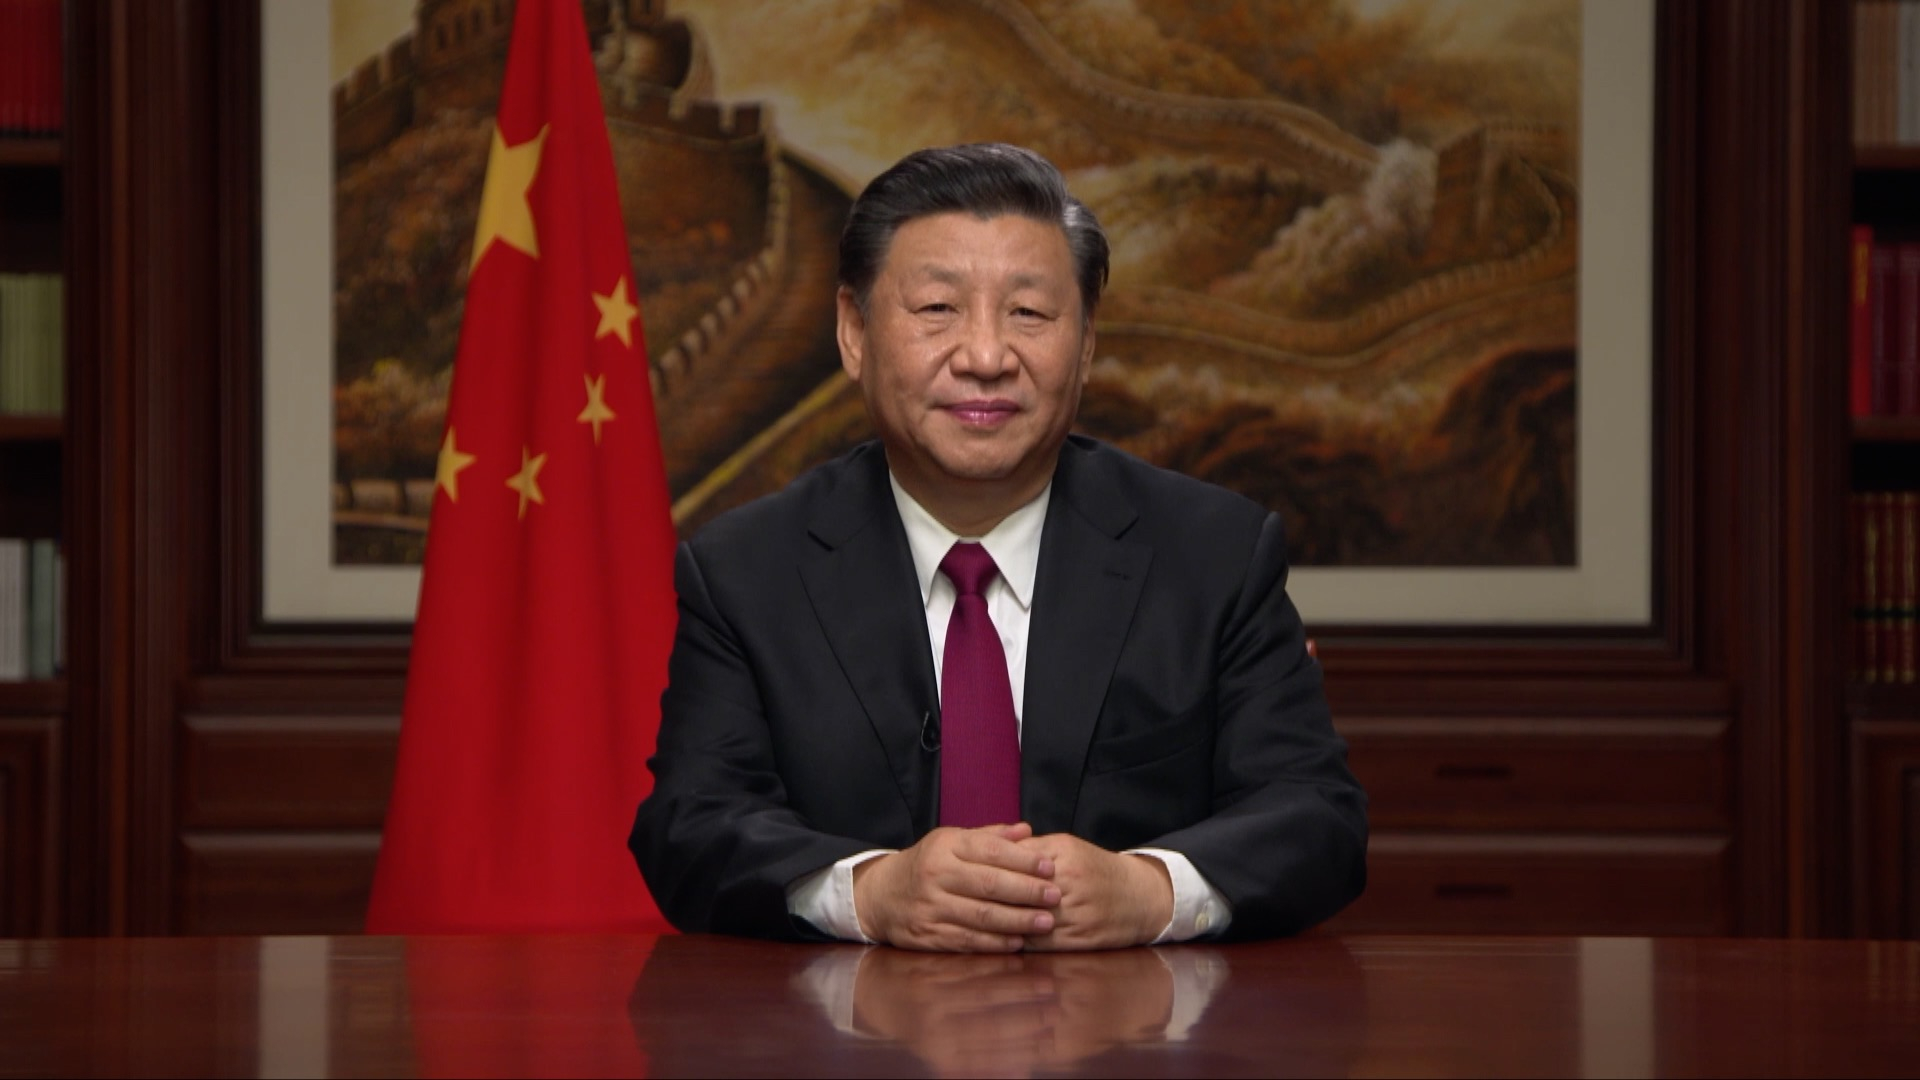 Chinese President Says His Country Will Provide More Assistance to Afghanistan